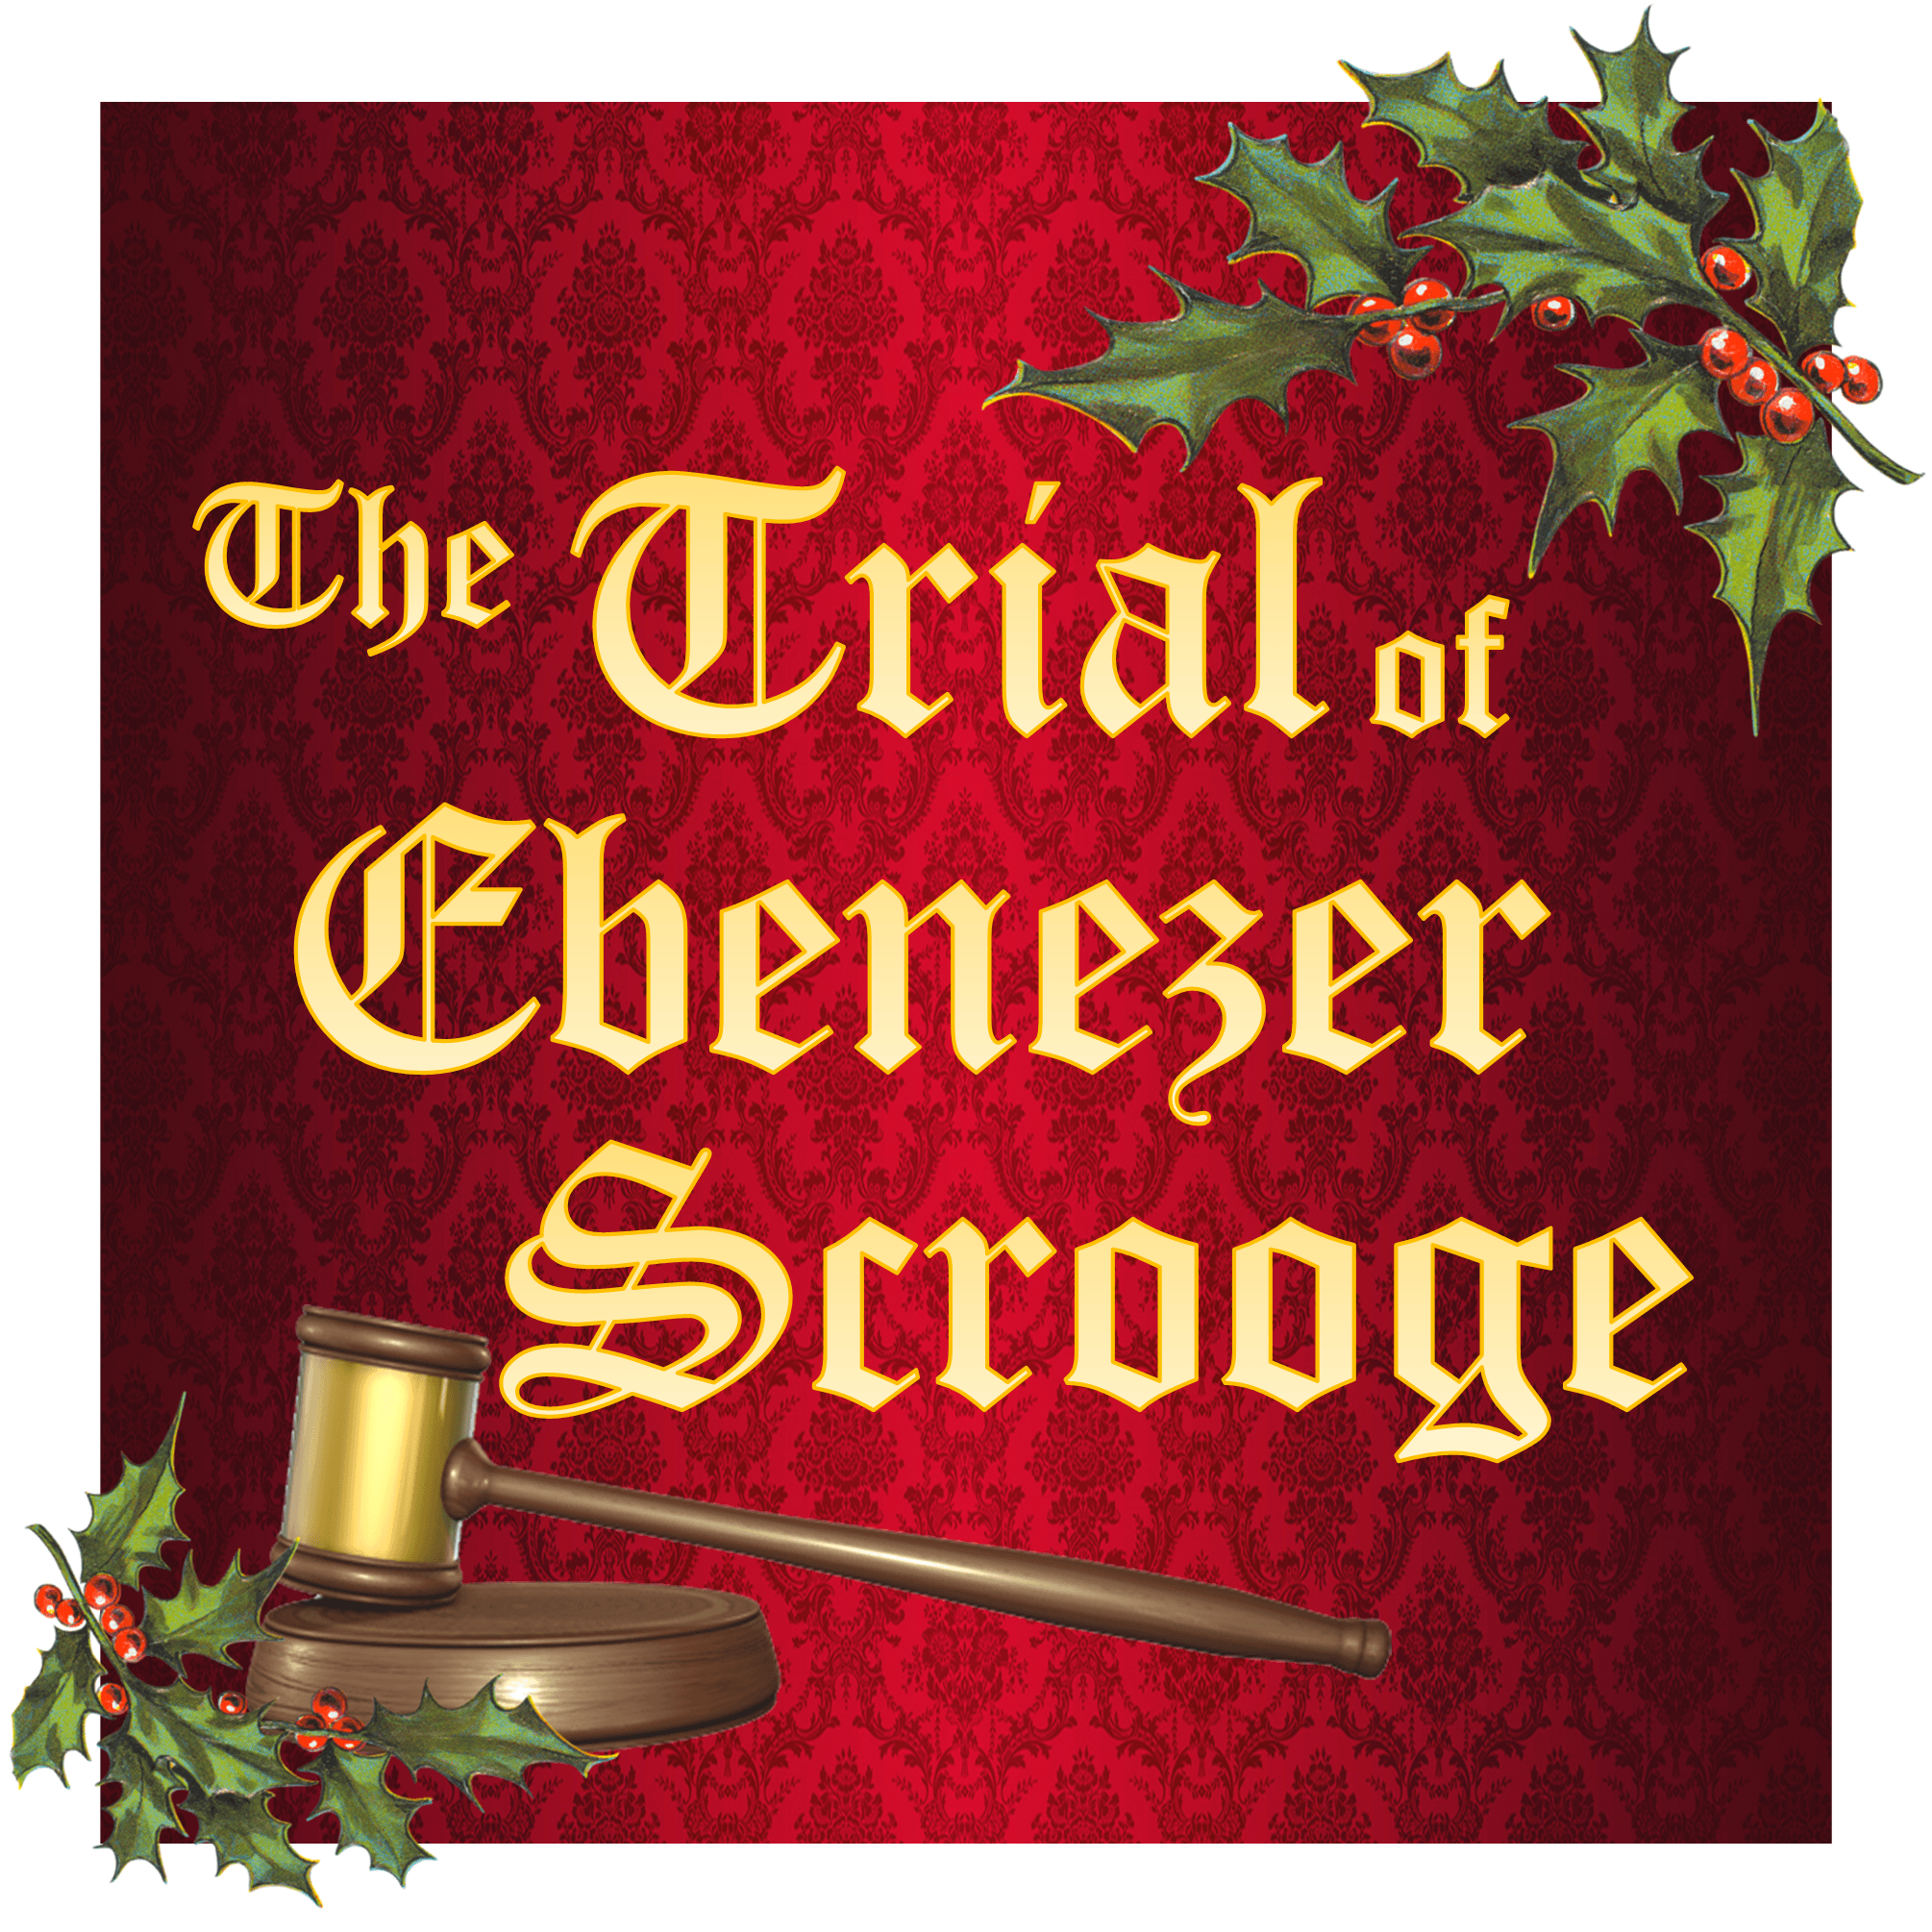 scrooge play 2020 test graphic